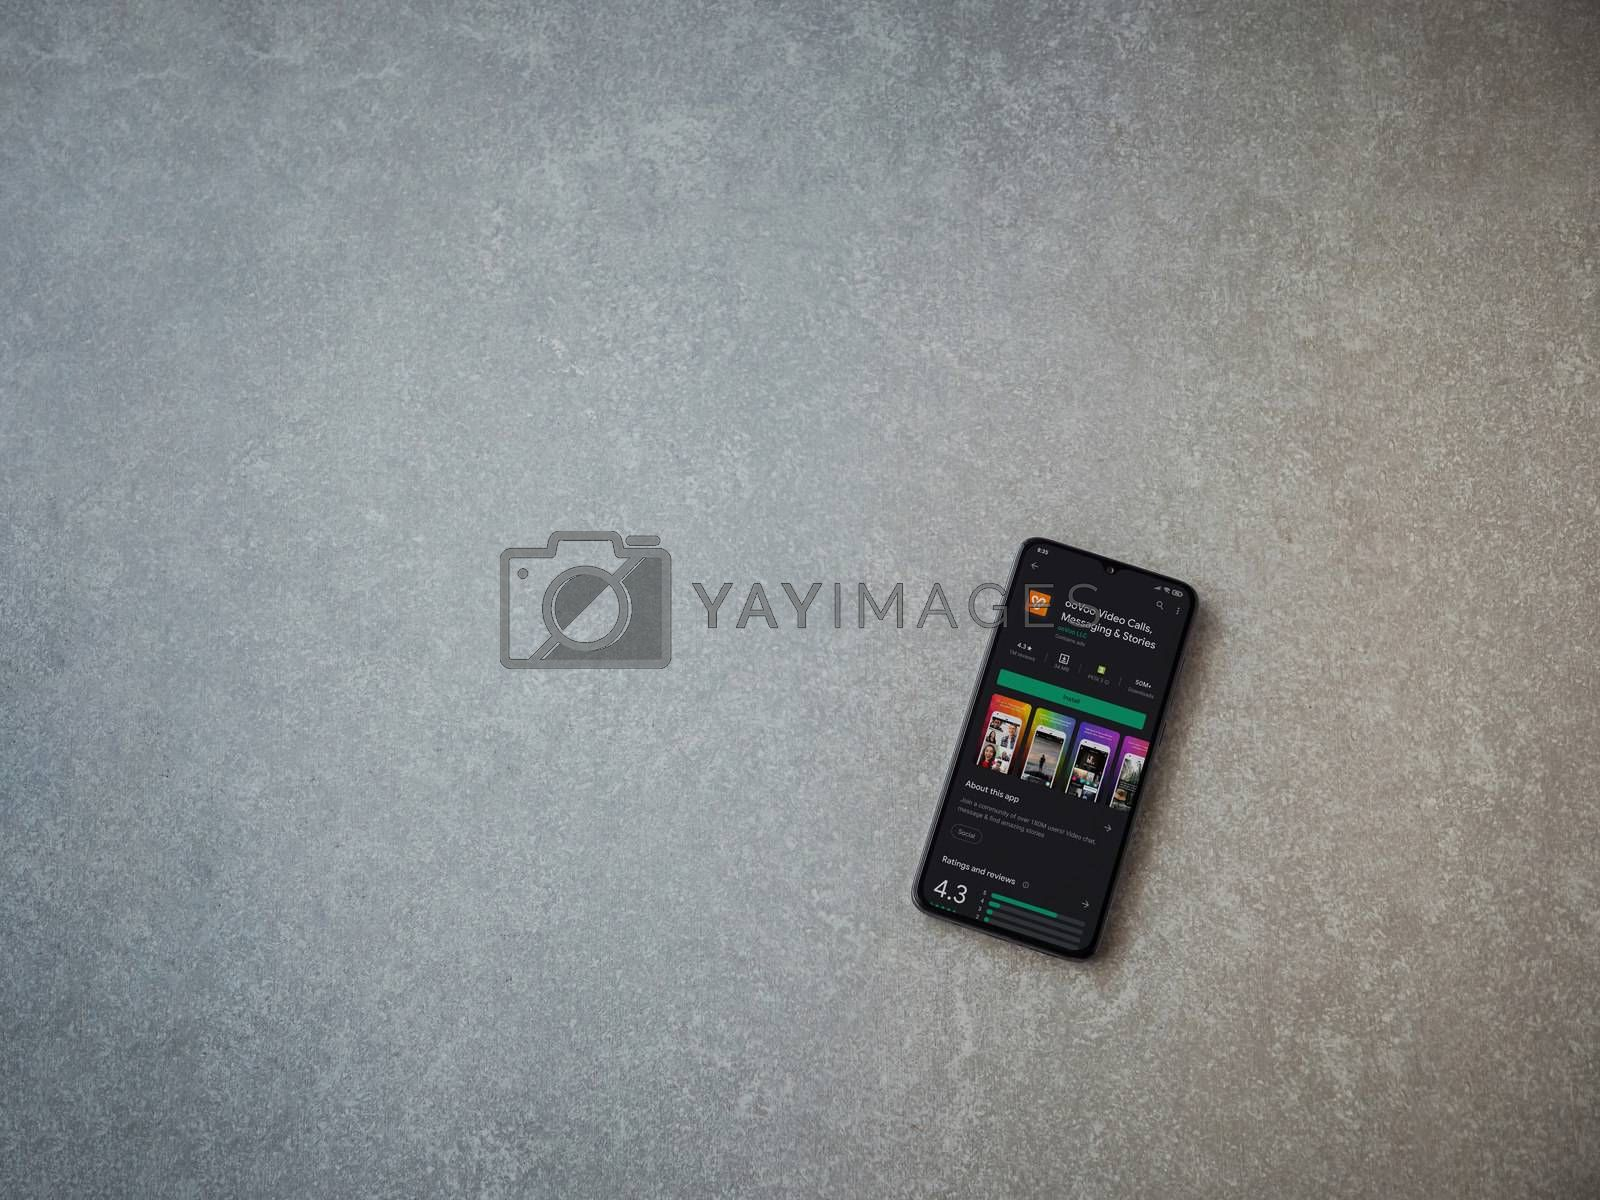 Lod, Israel - July 8, 2020: ooVoo app play store page on the display of a black mobile smartphone on ceramic stone background. Top view flat lay with copy space.